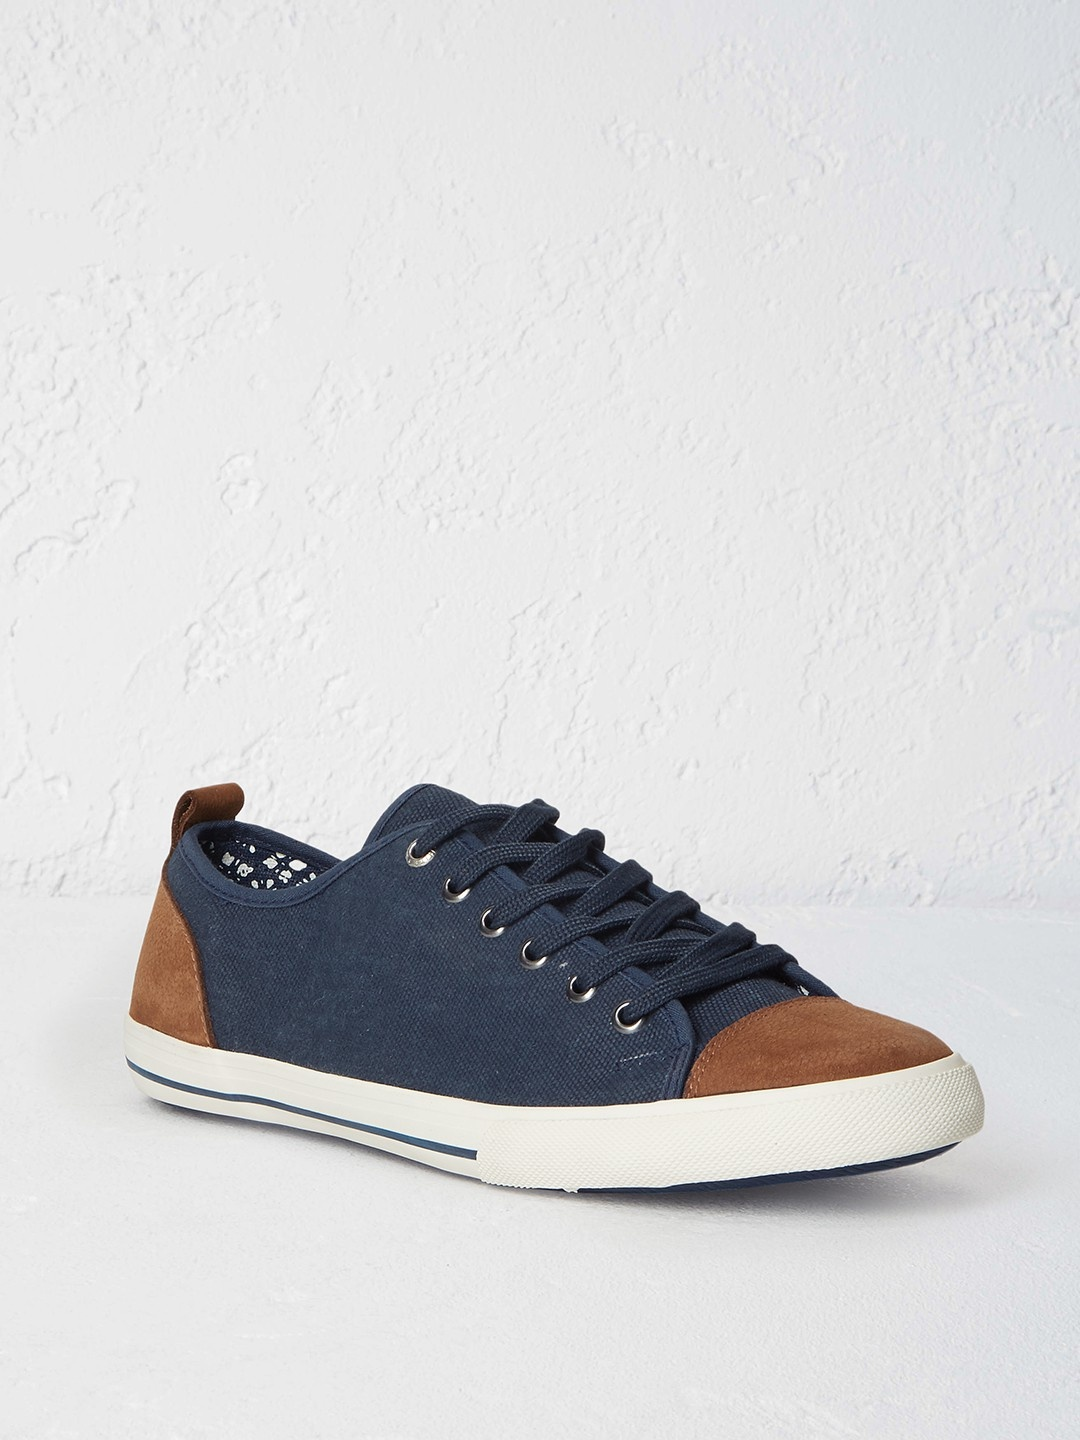 Mens lace up trainer